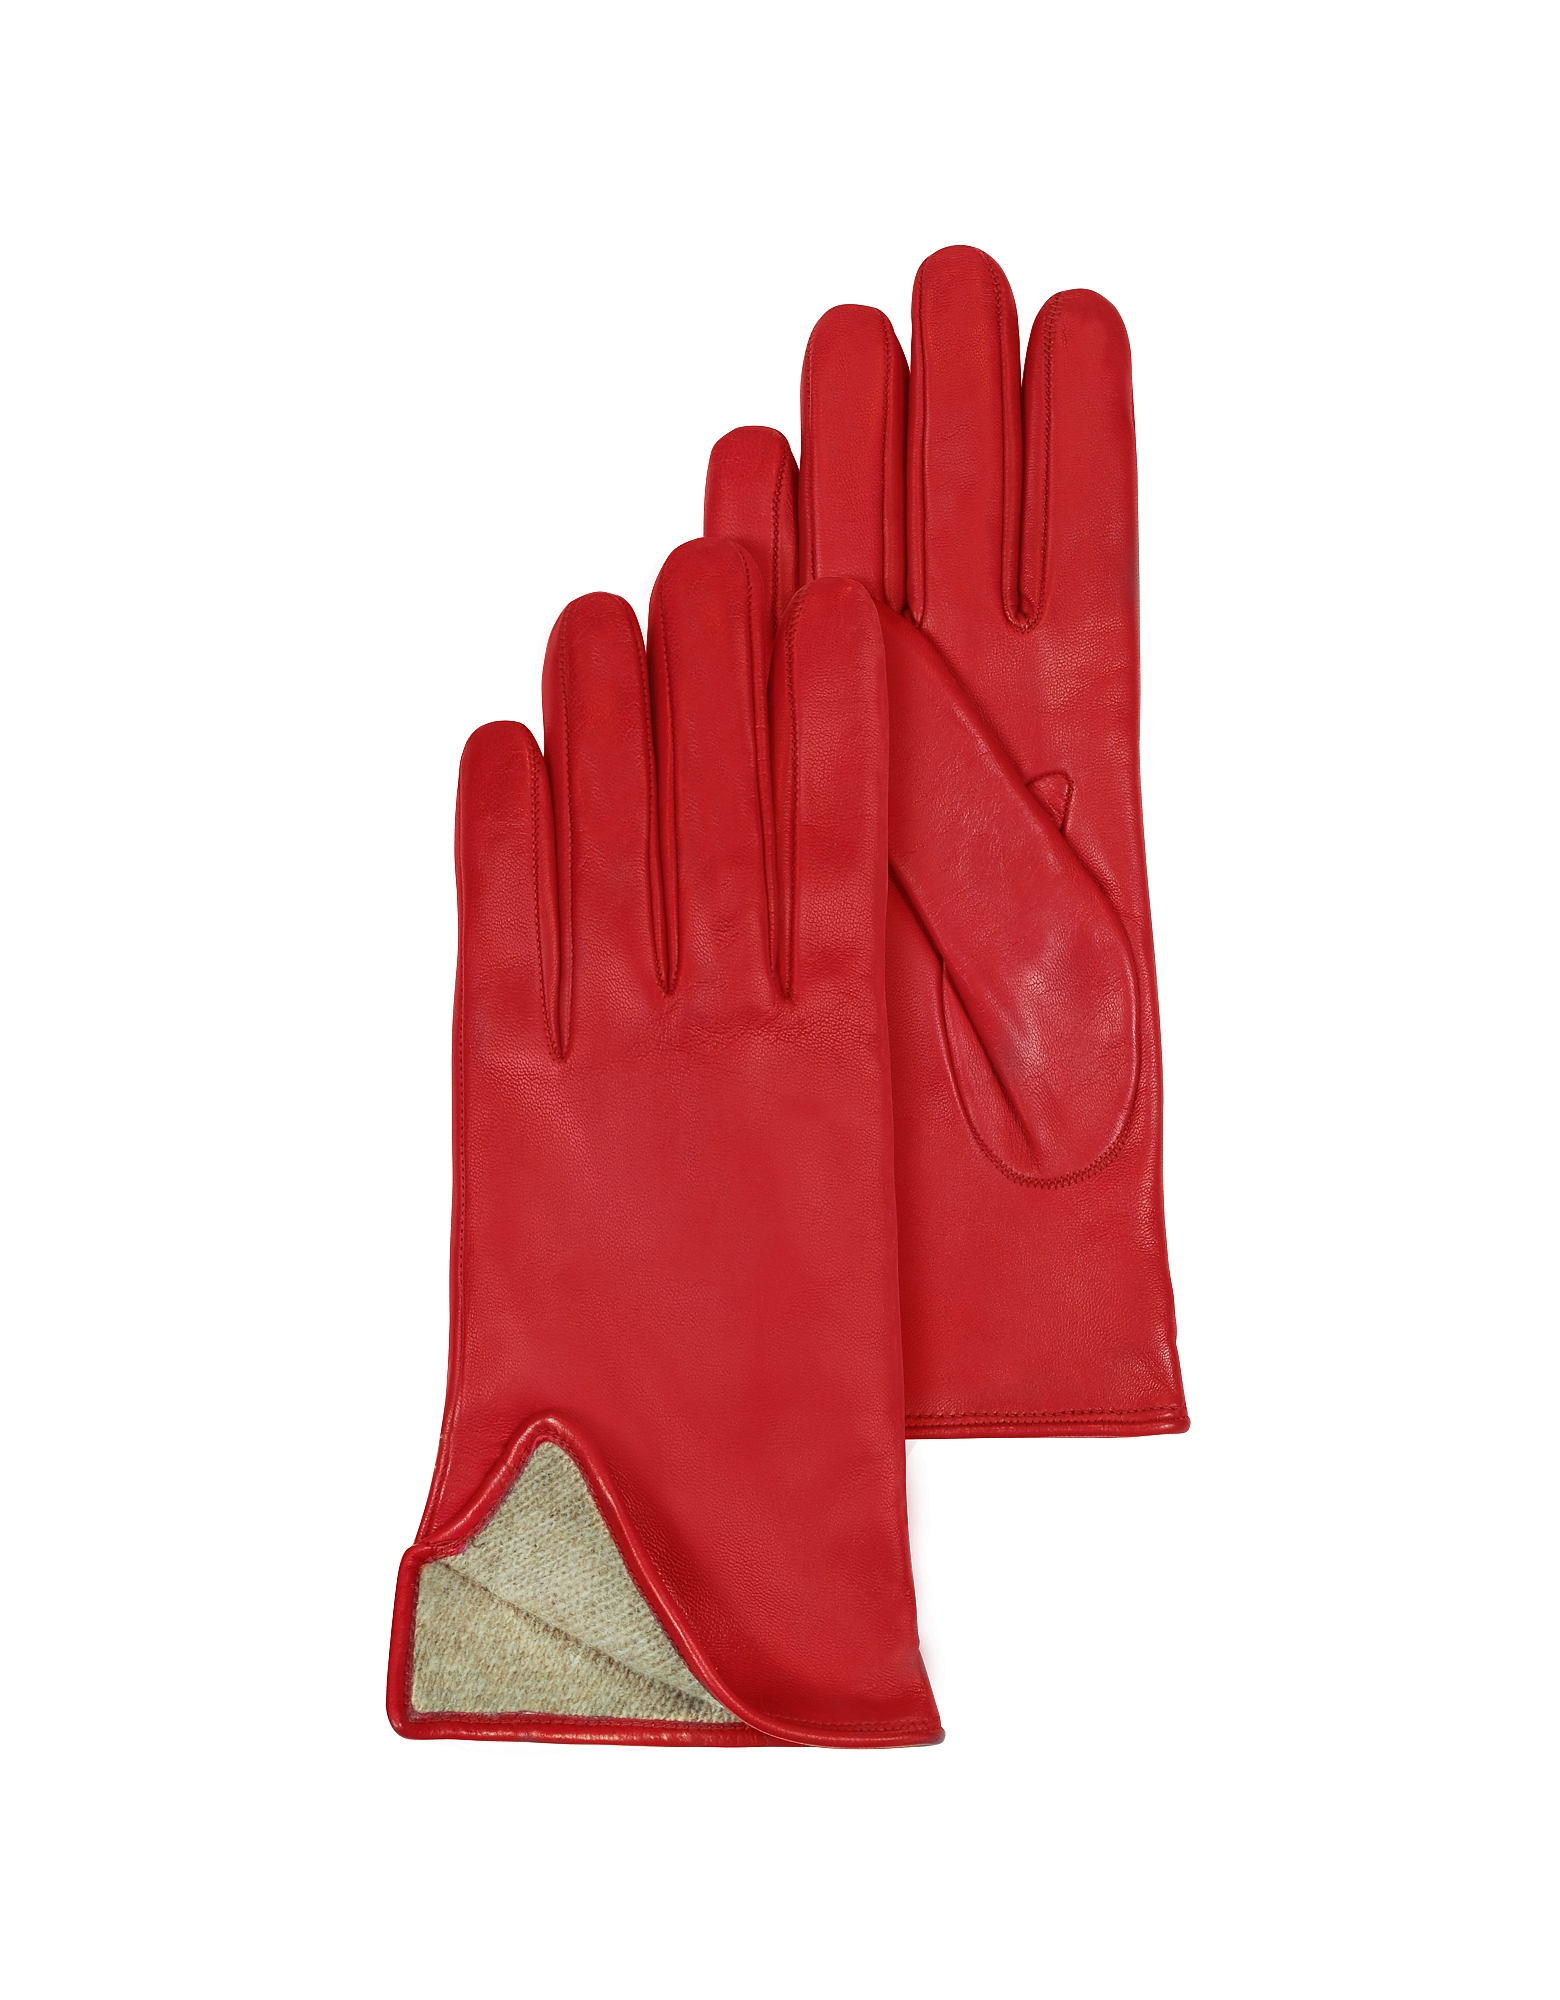 Red Leather Women's Gloves w/Cashmere Lining от Forzieri.com INT